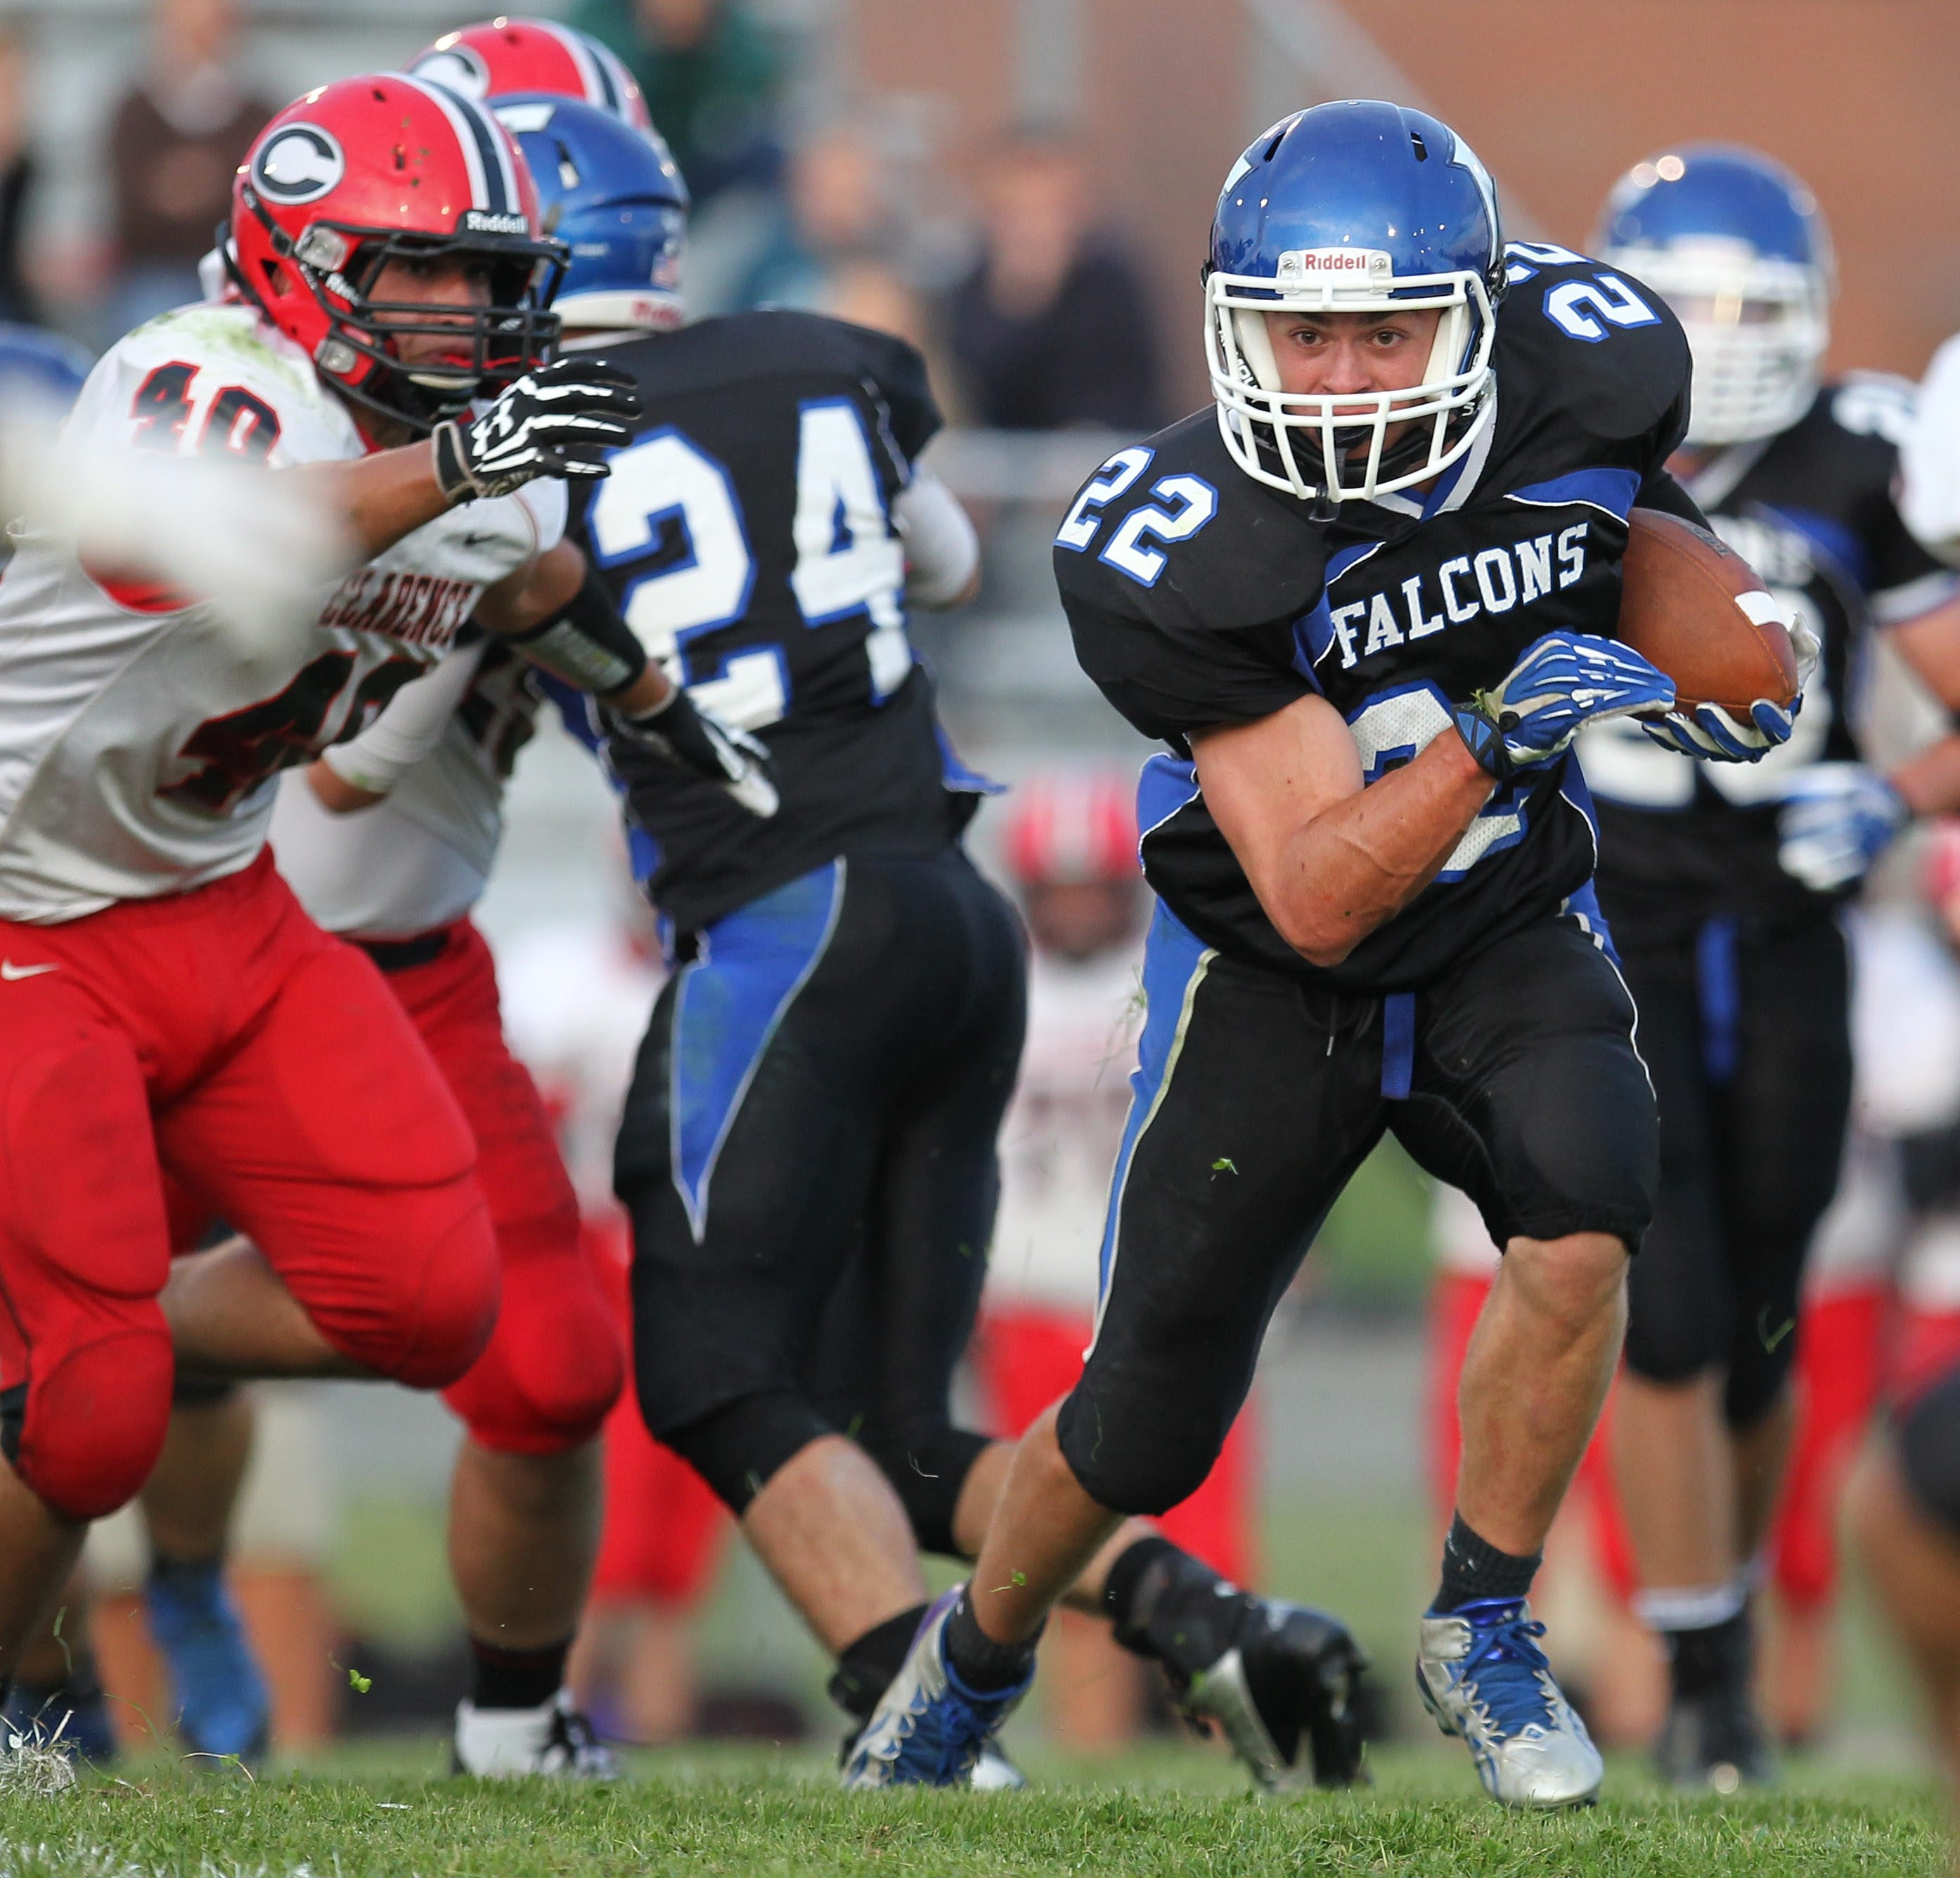 Frontier's Cameron Coon has 11 rushing touchdowns this season.